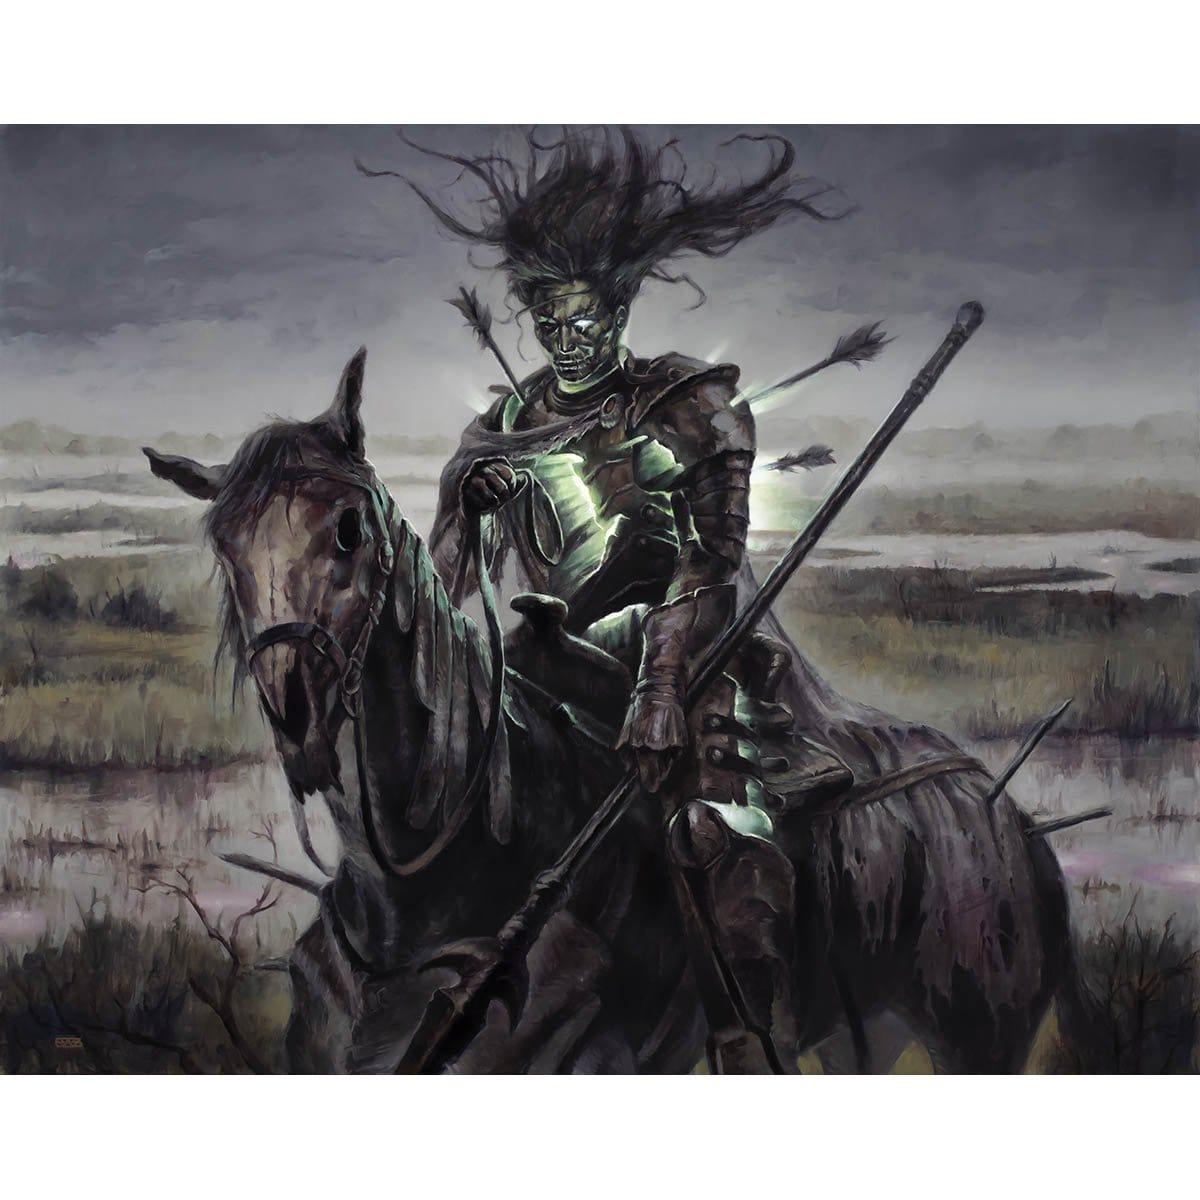 Murderous Rider Print - Print - Original Magic Art - Accessories for Magic the Gathering and other card games